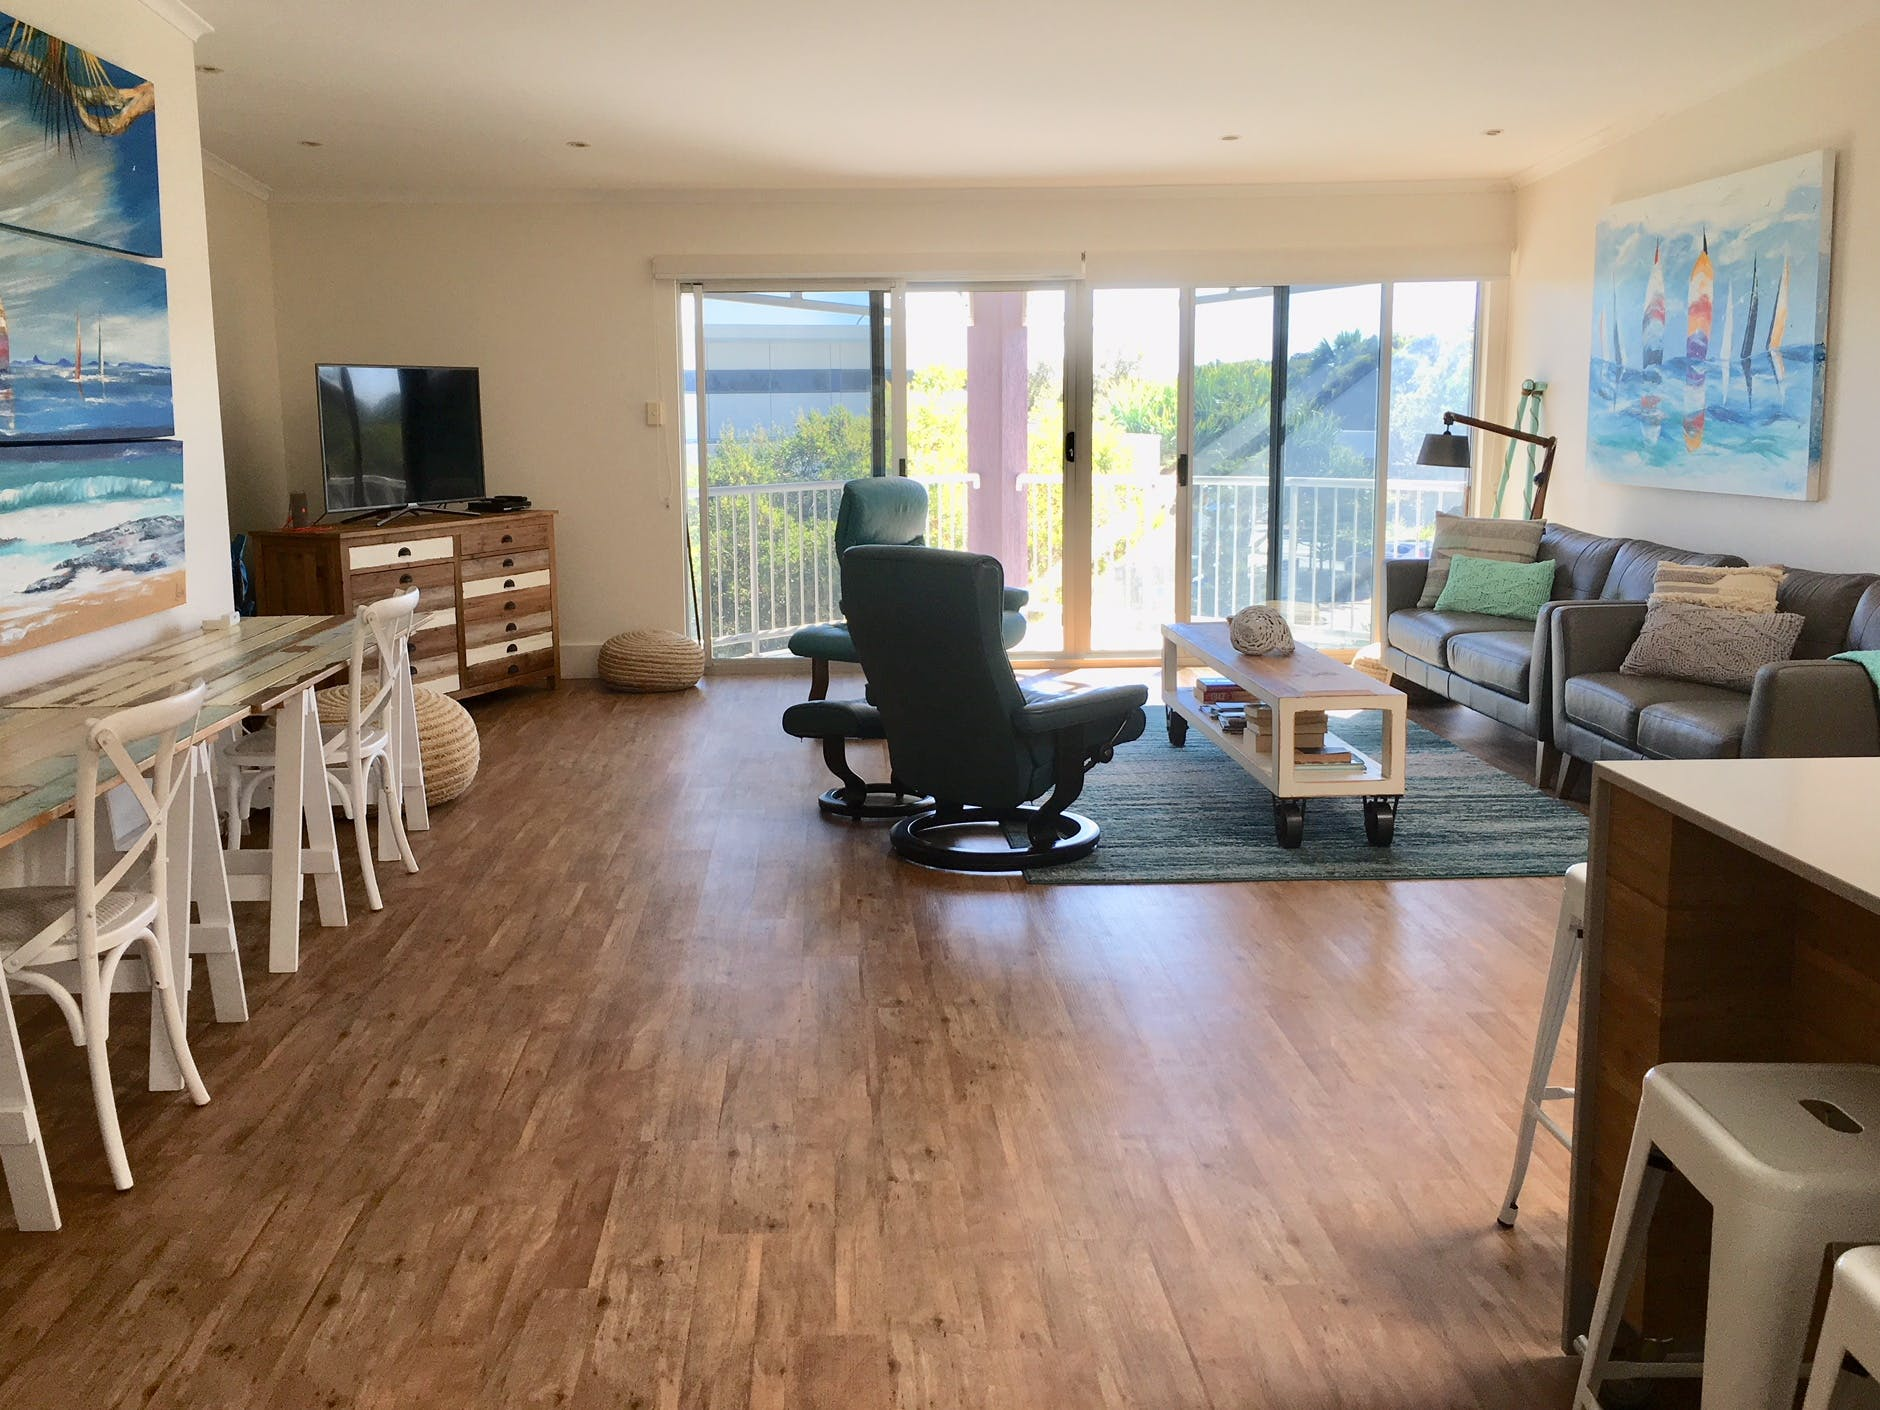 Professional Suite, multi-use area at Marsh Place Suite, image 1